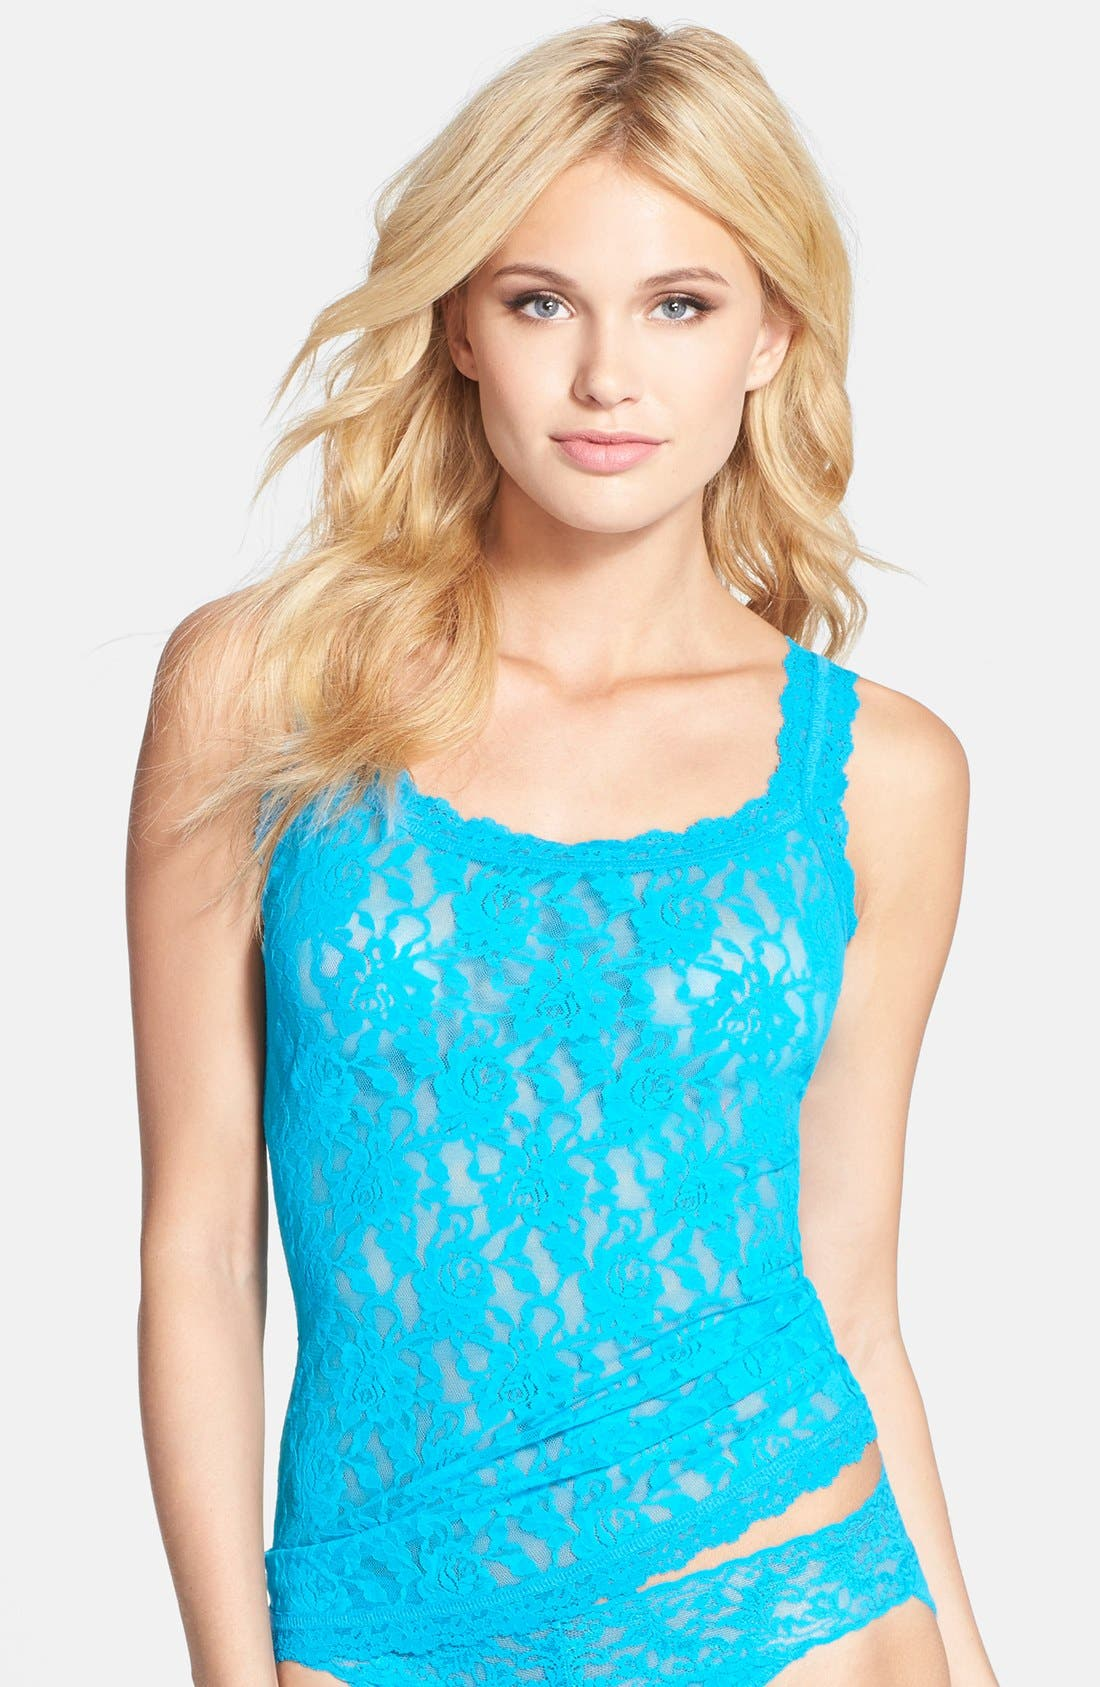 Alternate Image 1 Selected - Hanky Panky 'Signature Lace' Camisole